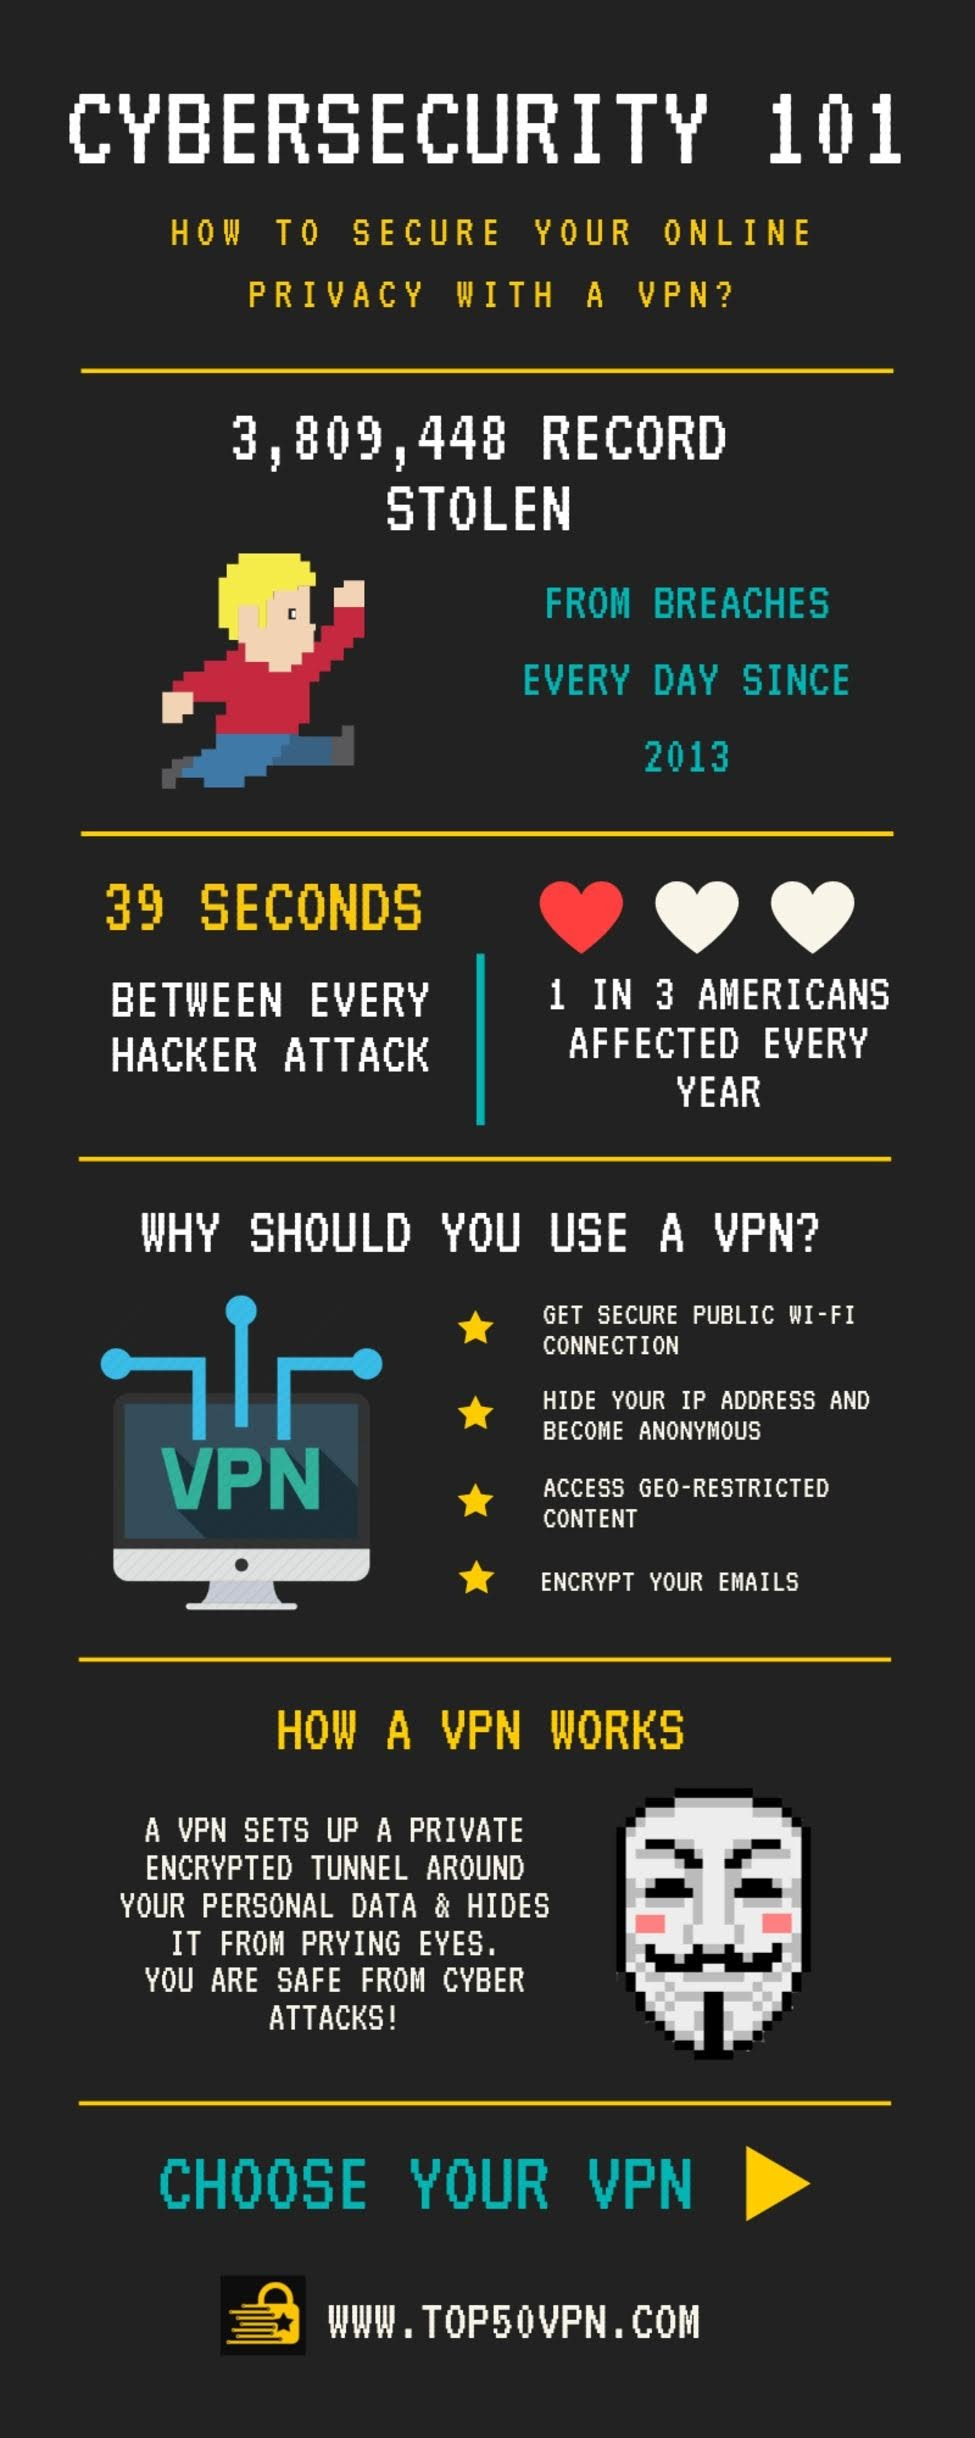 Cyber Security 101: How to secure your online privacy with a VPN?